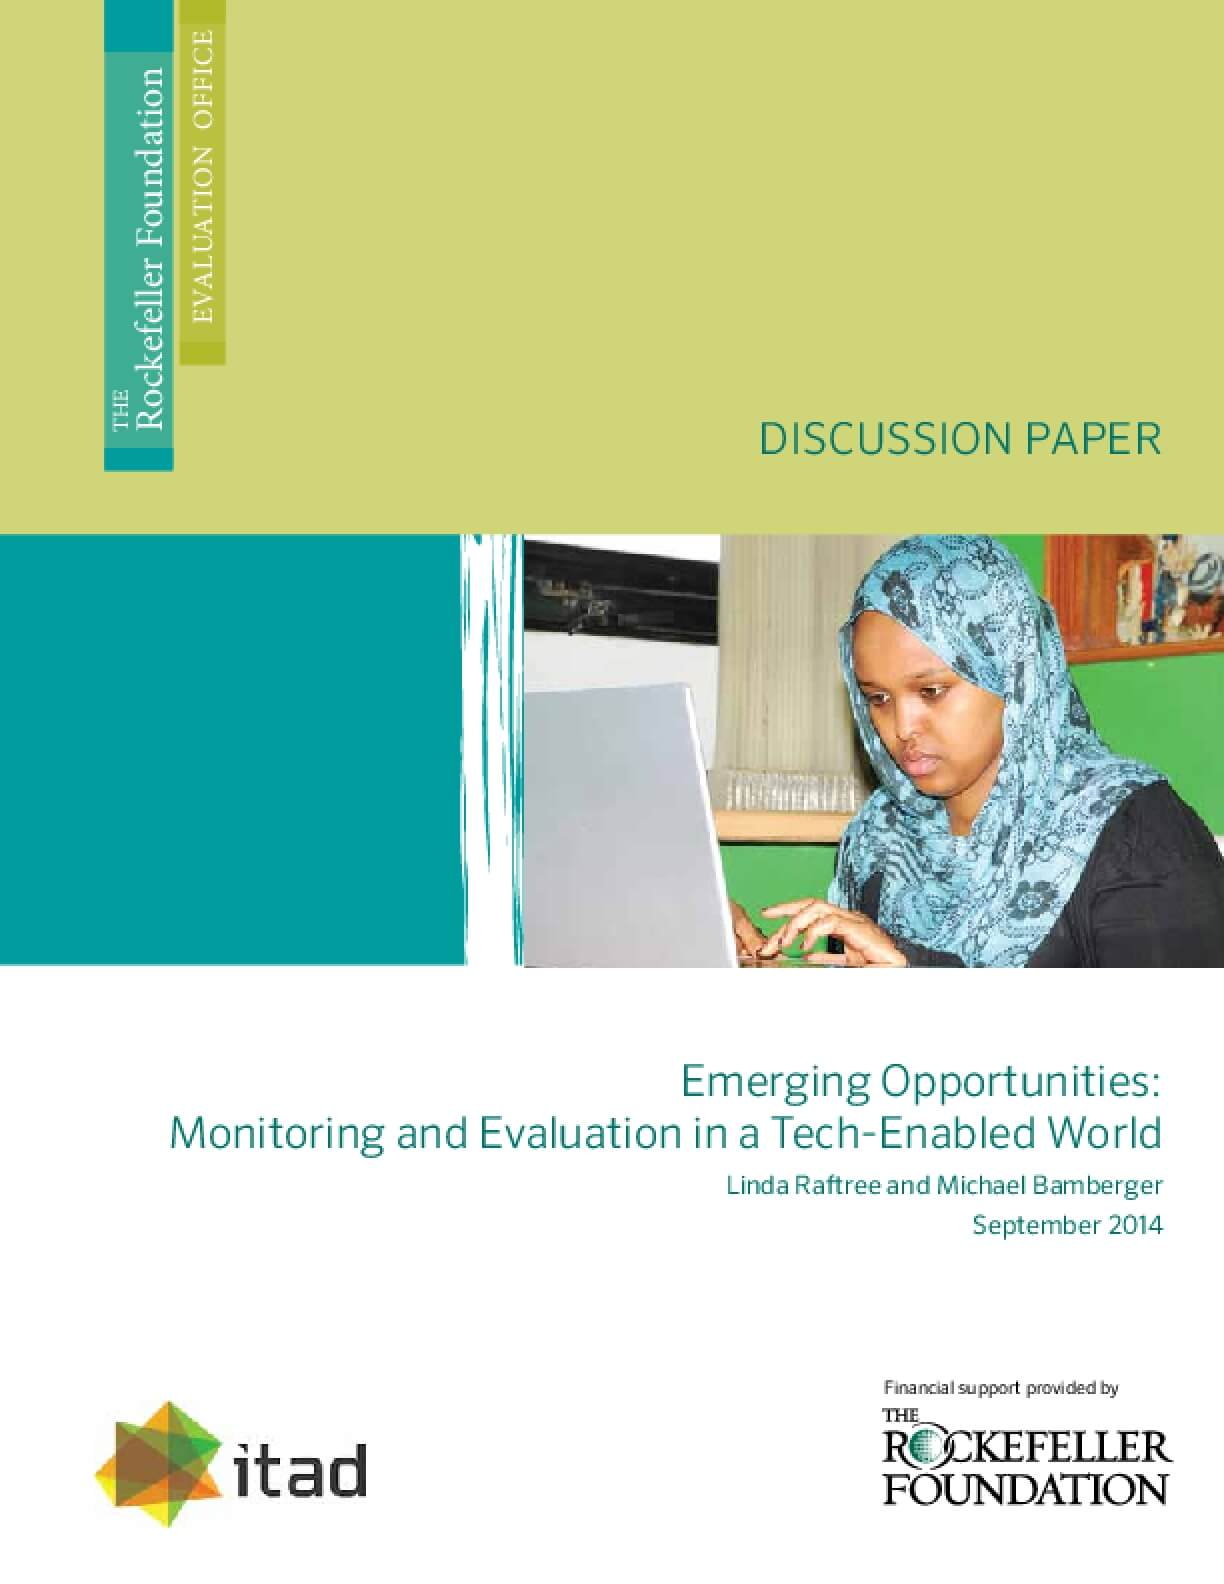 Emerging Opportunities: Monitoring and Evaluation in a Tech-Enabled World